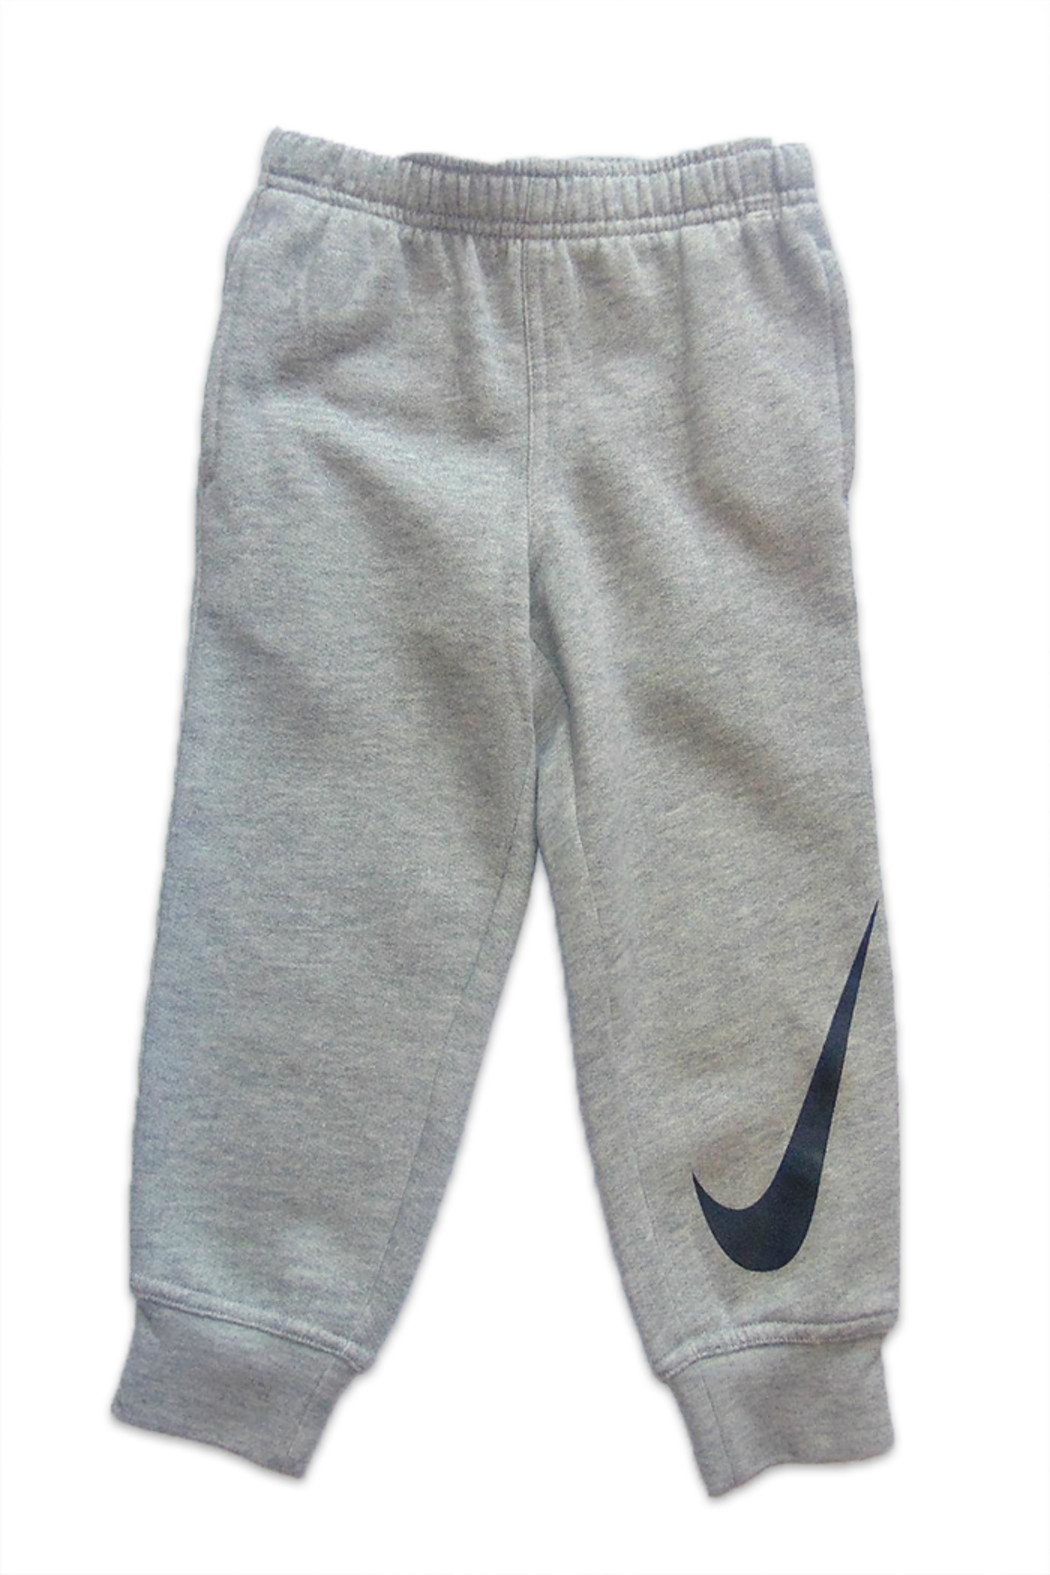 f5bf16f6e695 Nike Kids Grey Jogger Pants from Canada by Boutique Zias — Shoptiques